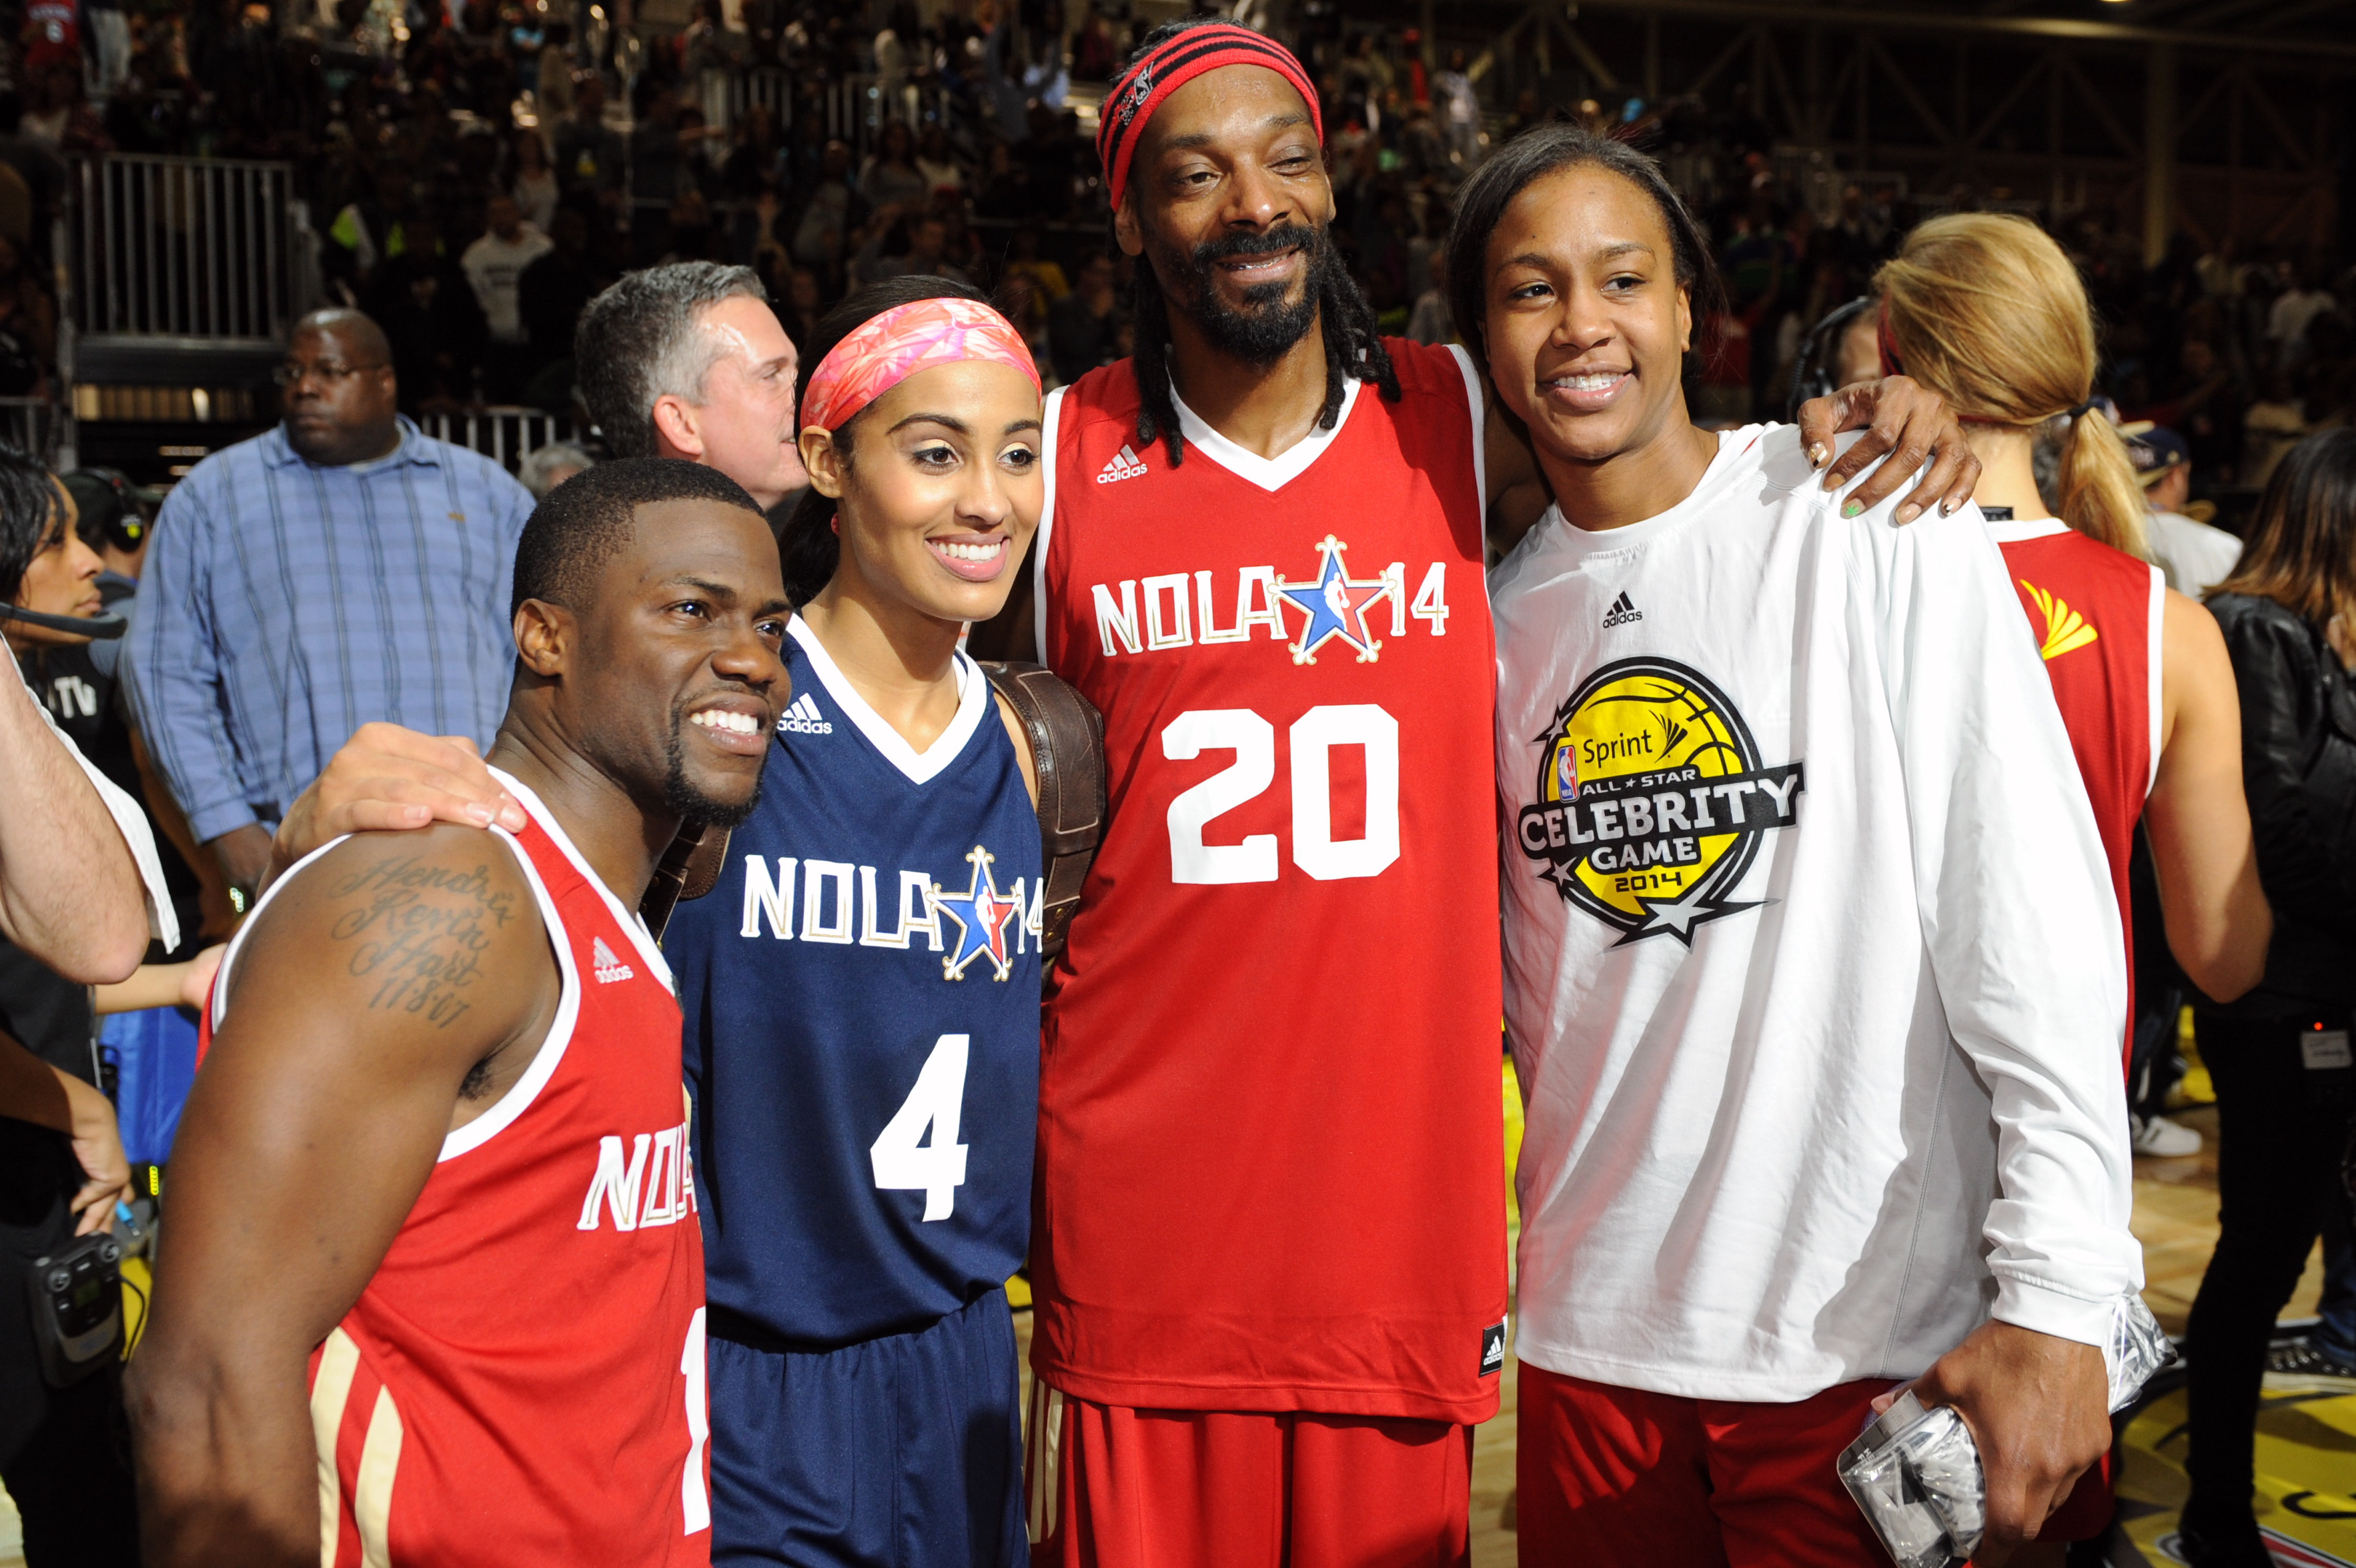 Full celebrity nba game